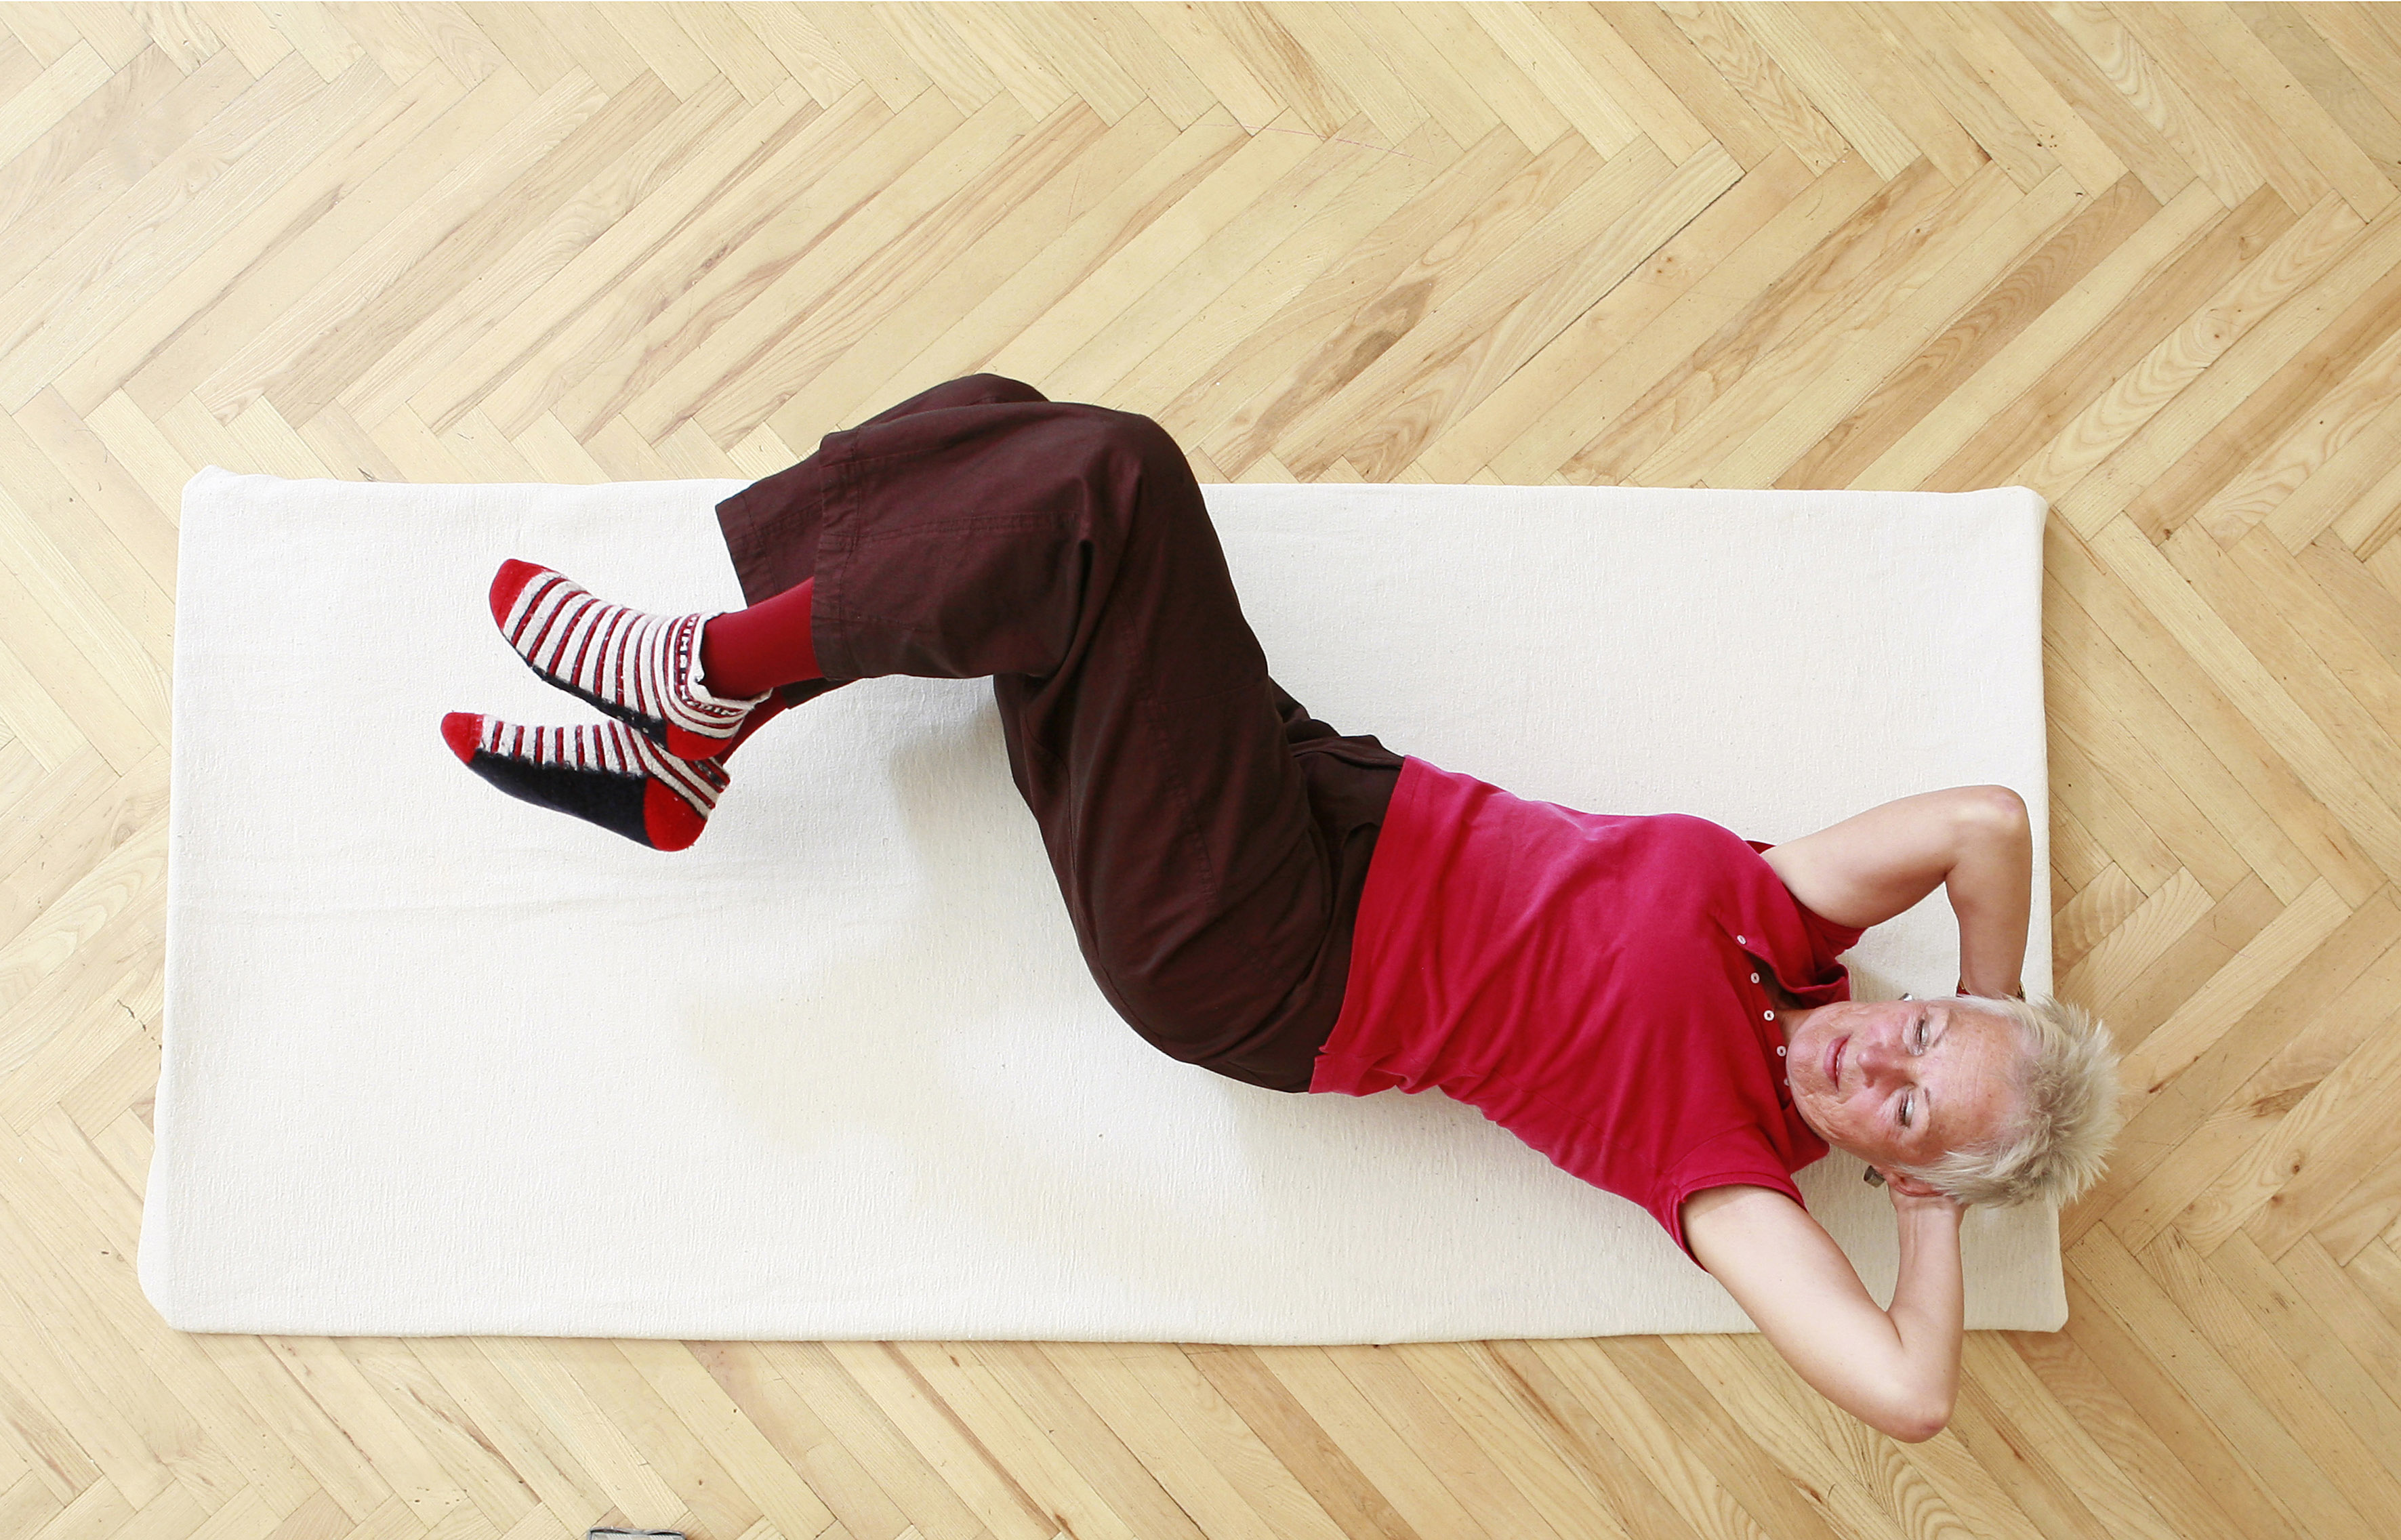 Feldenkrais: Movement for Comfort and Ease